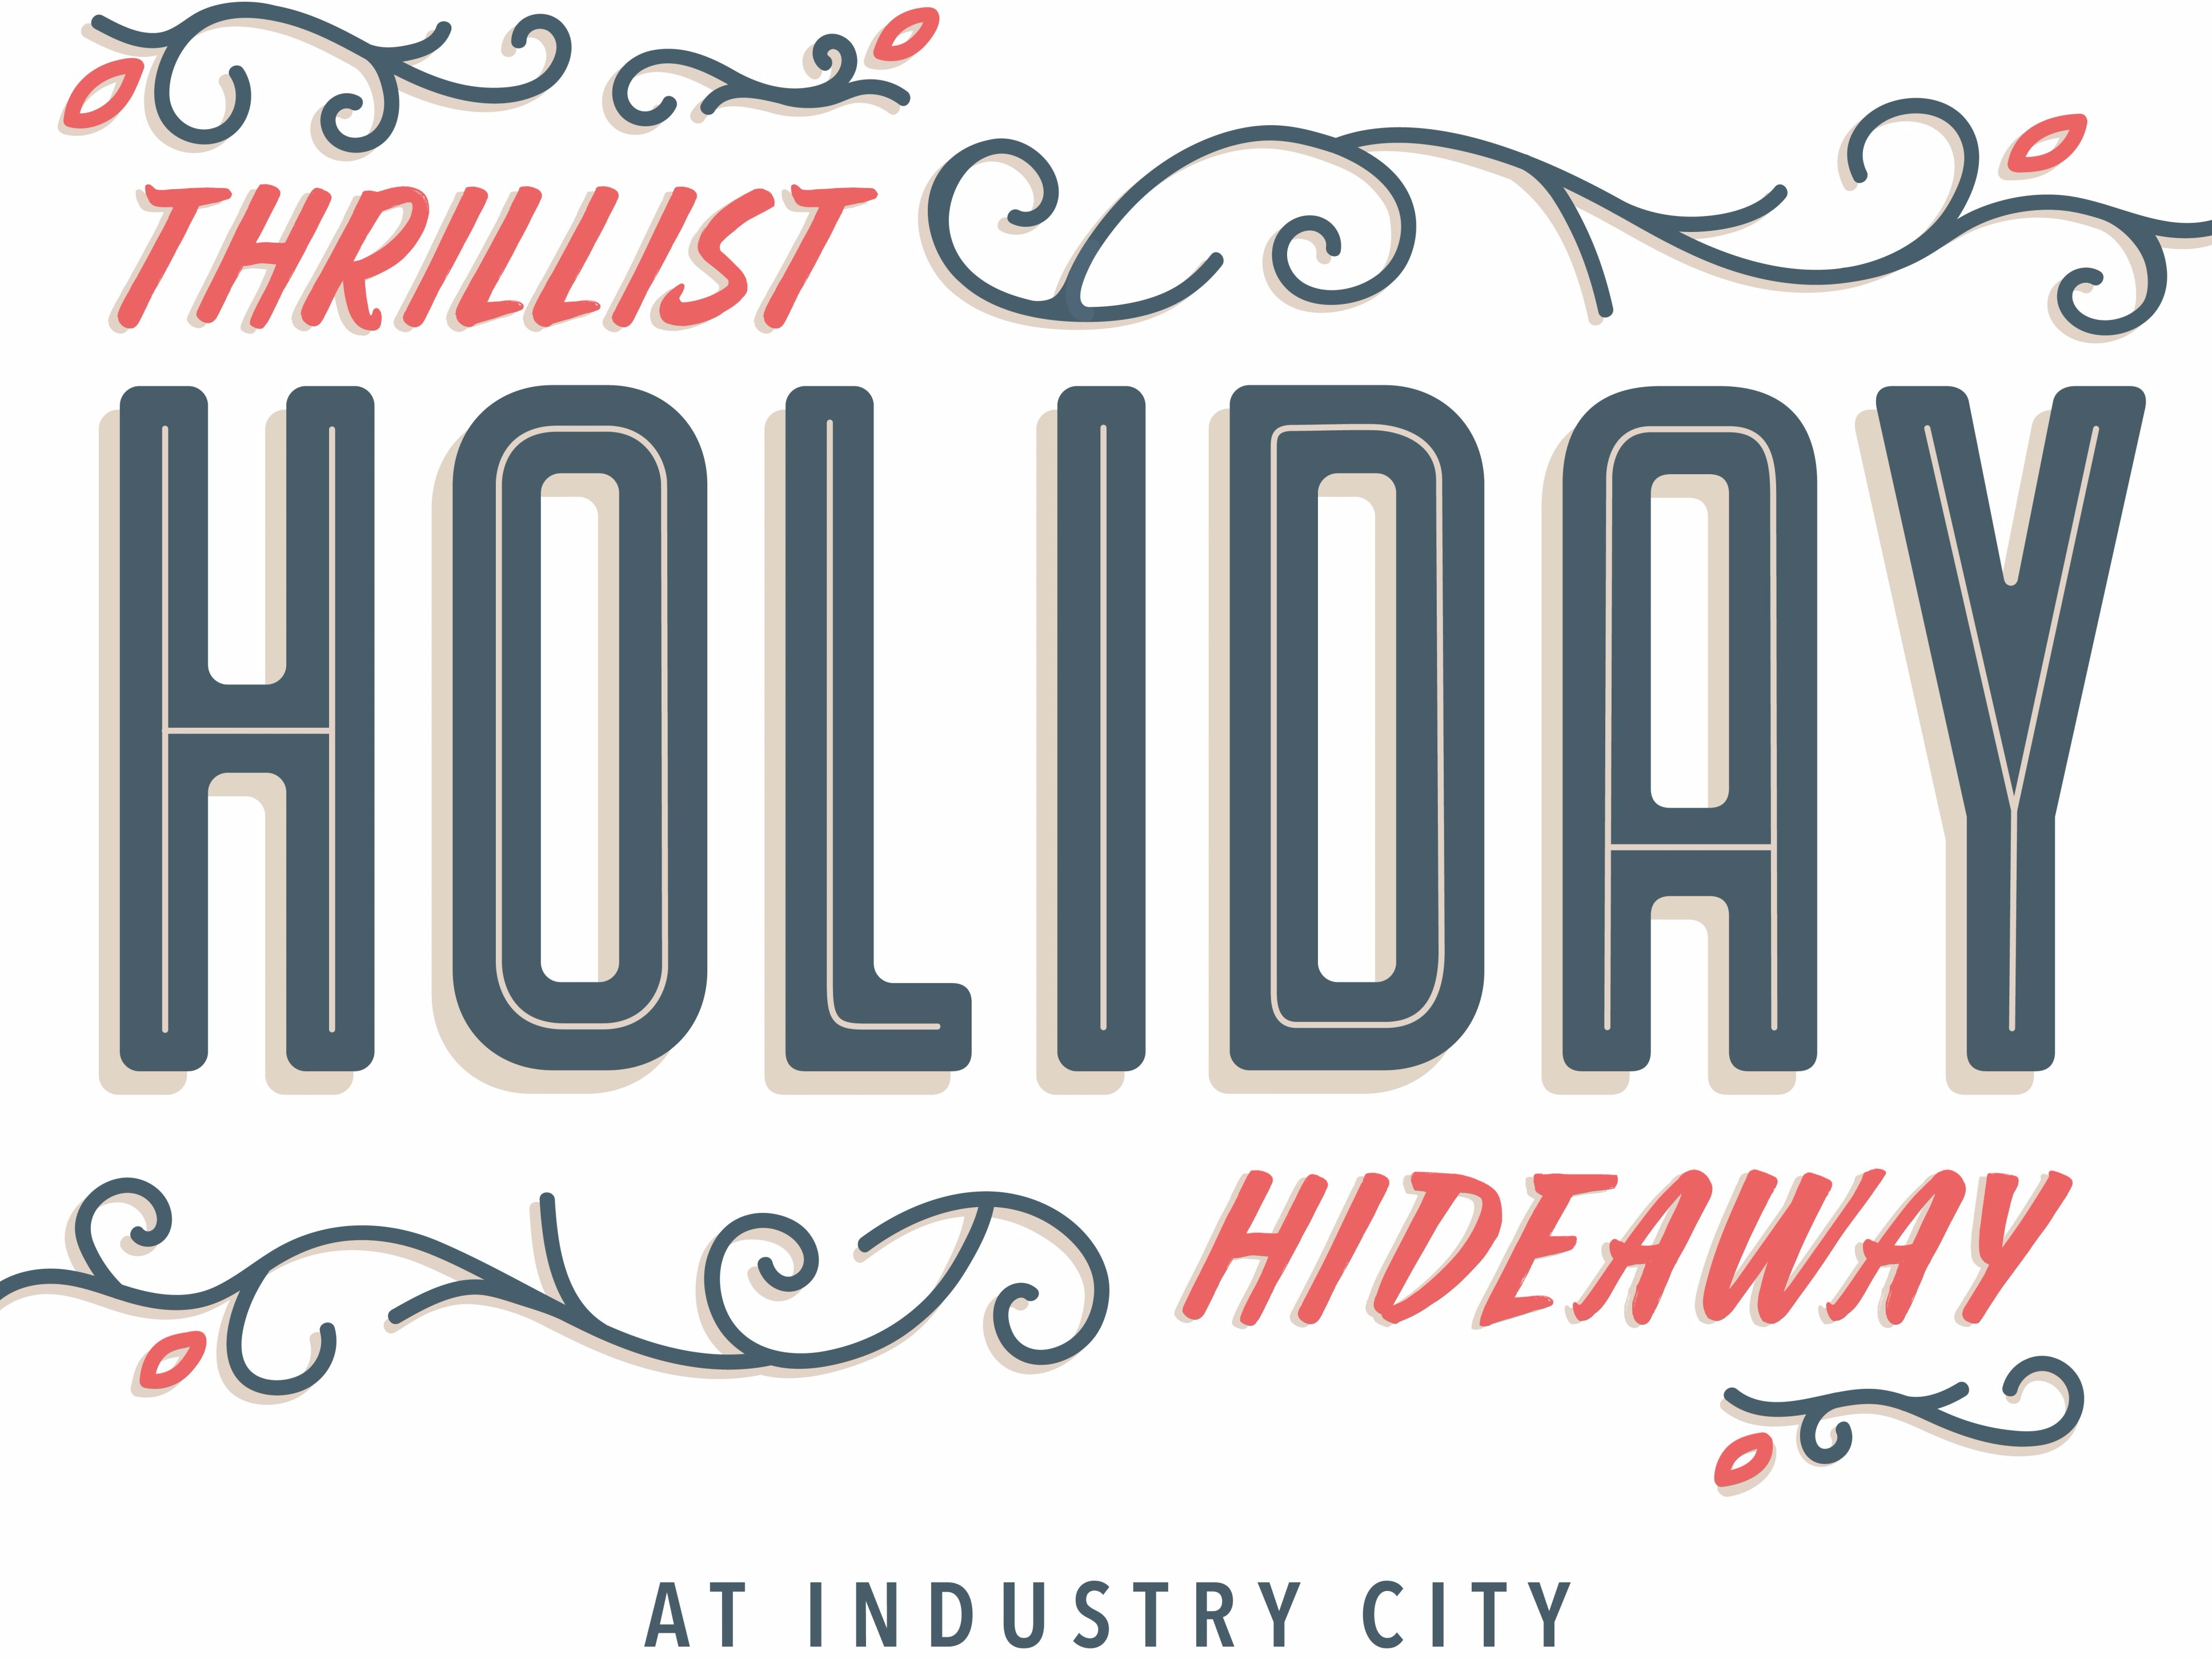 Special Holiday Edition Tis Season For >> Tis The Season For Thrillist S Holiday Hideaway With Special Musical